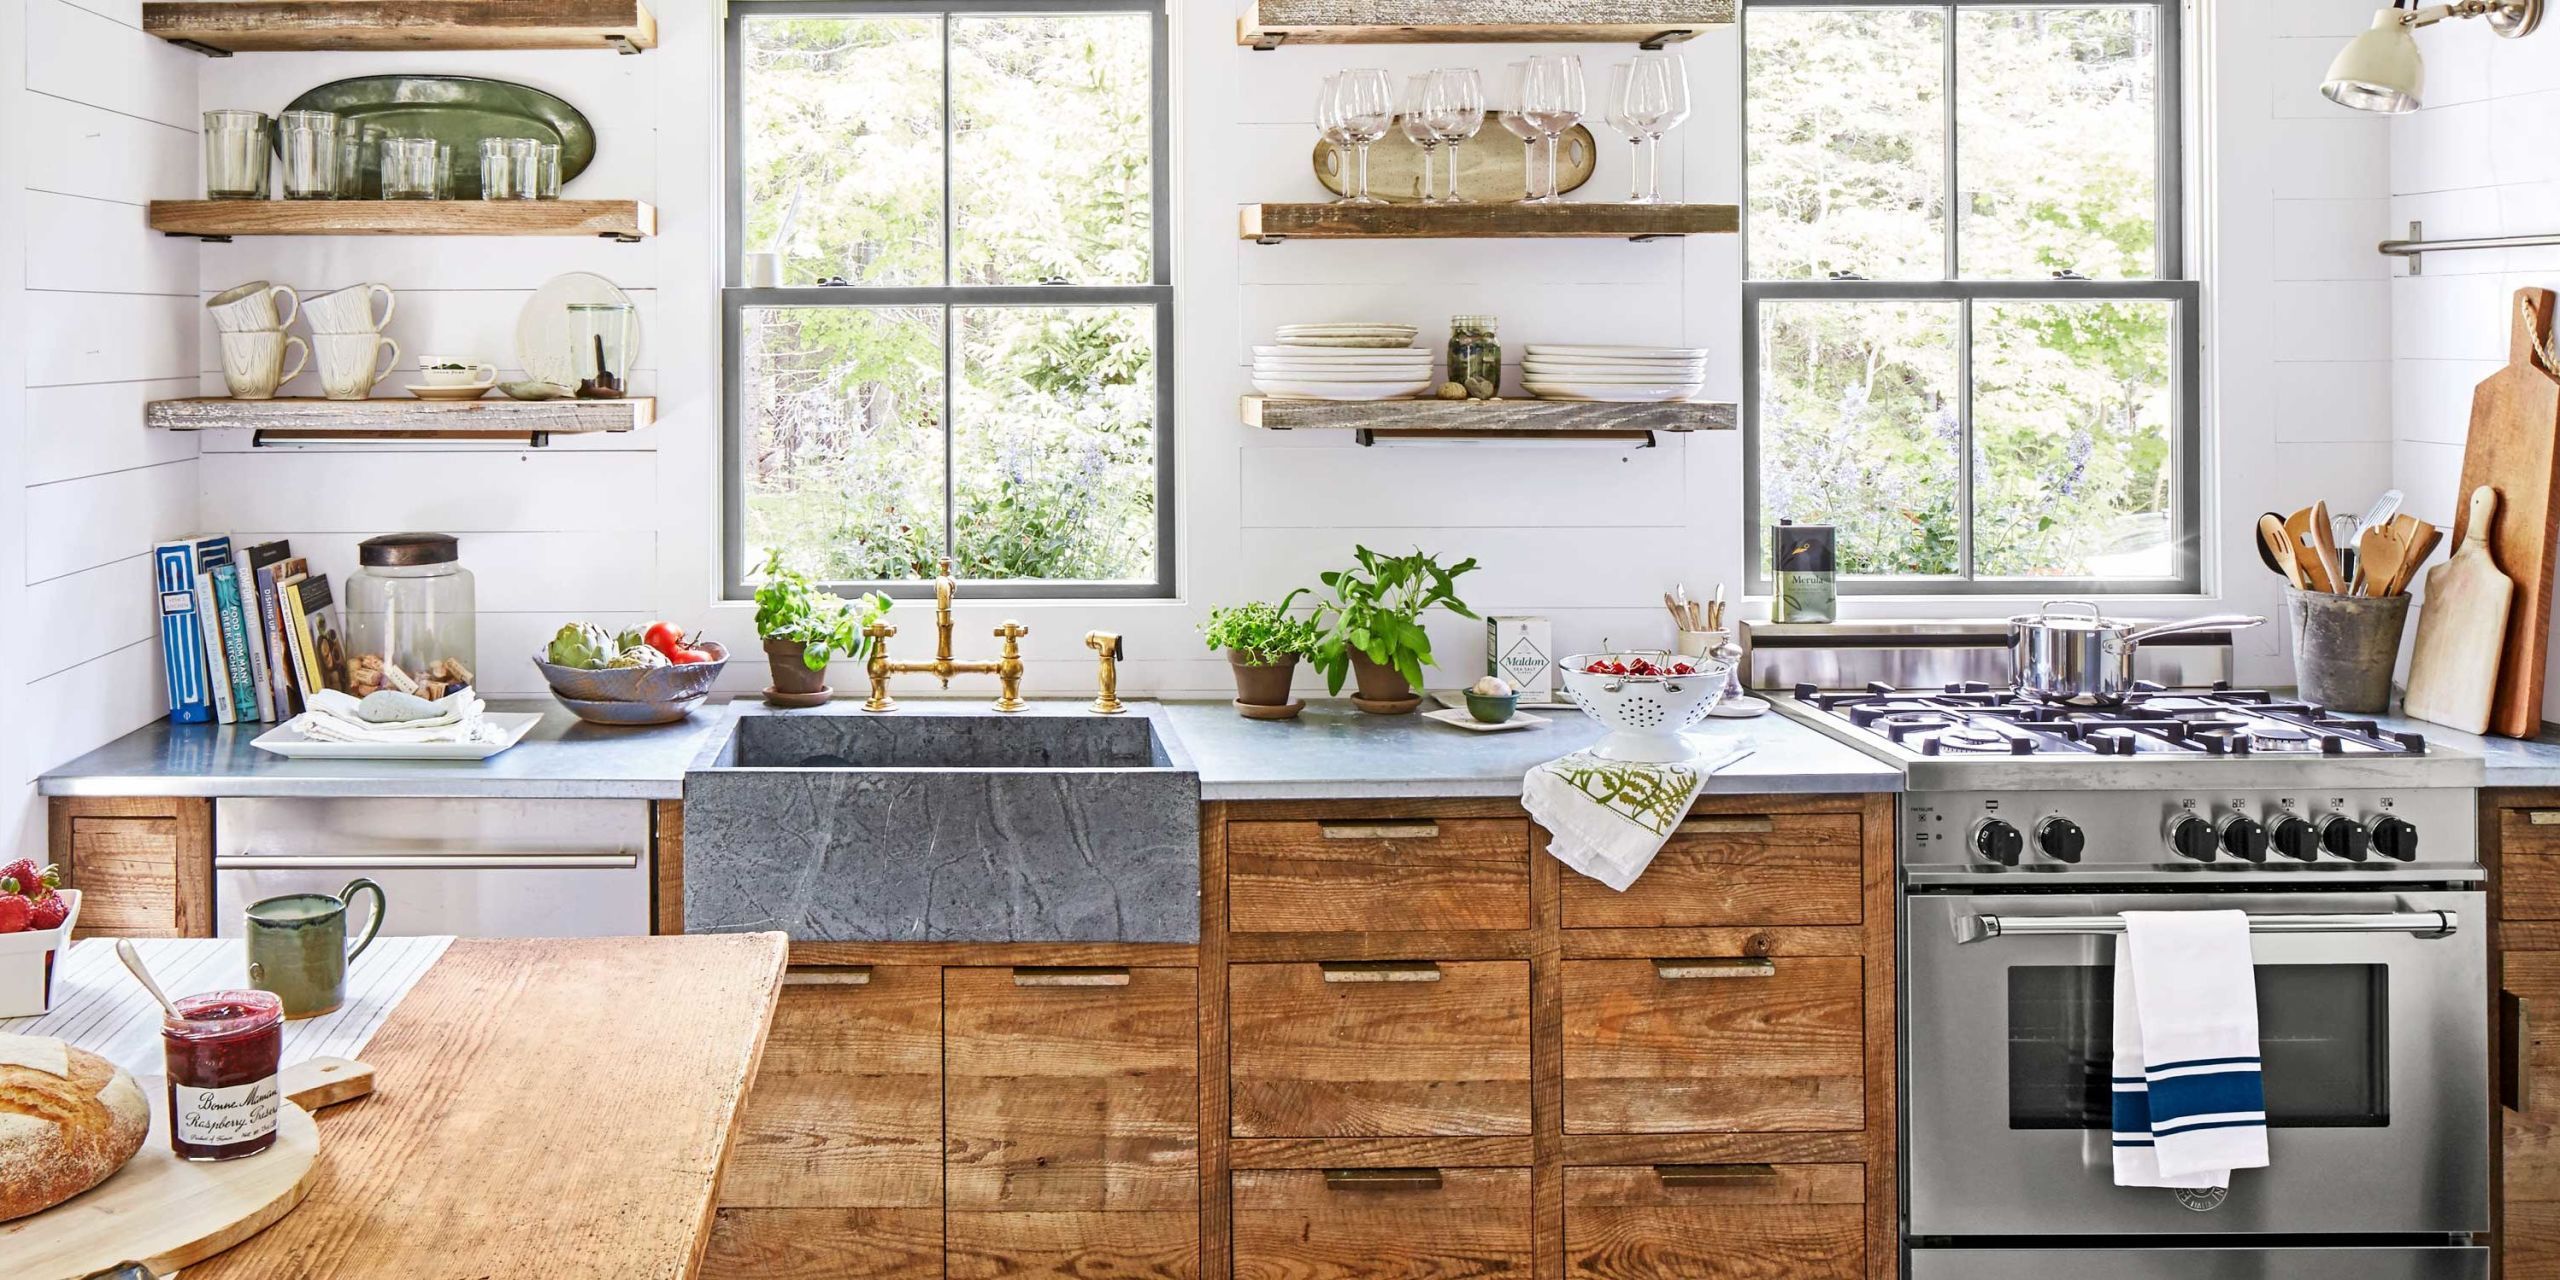 100 Kitchen Design Ideas Pictures Of Country Decorating Rhcountryliving: Kitchen Decorations At Home Improvement Advice